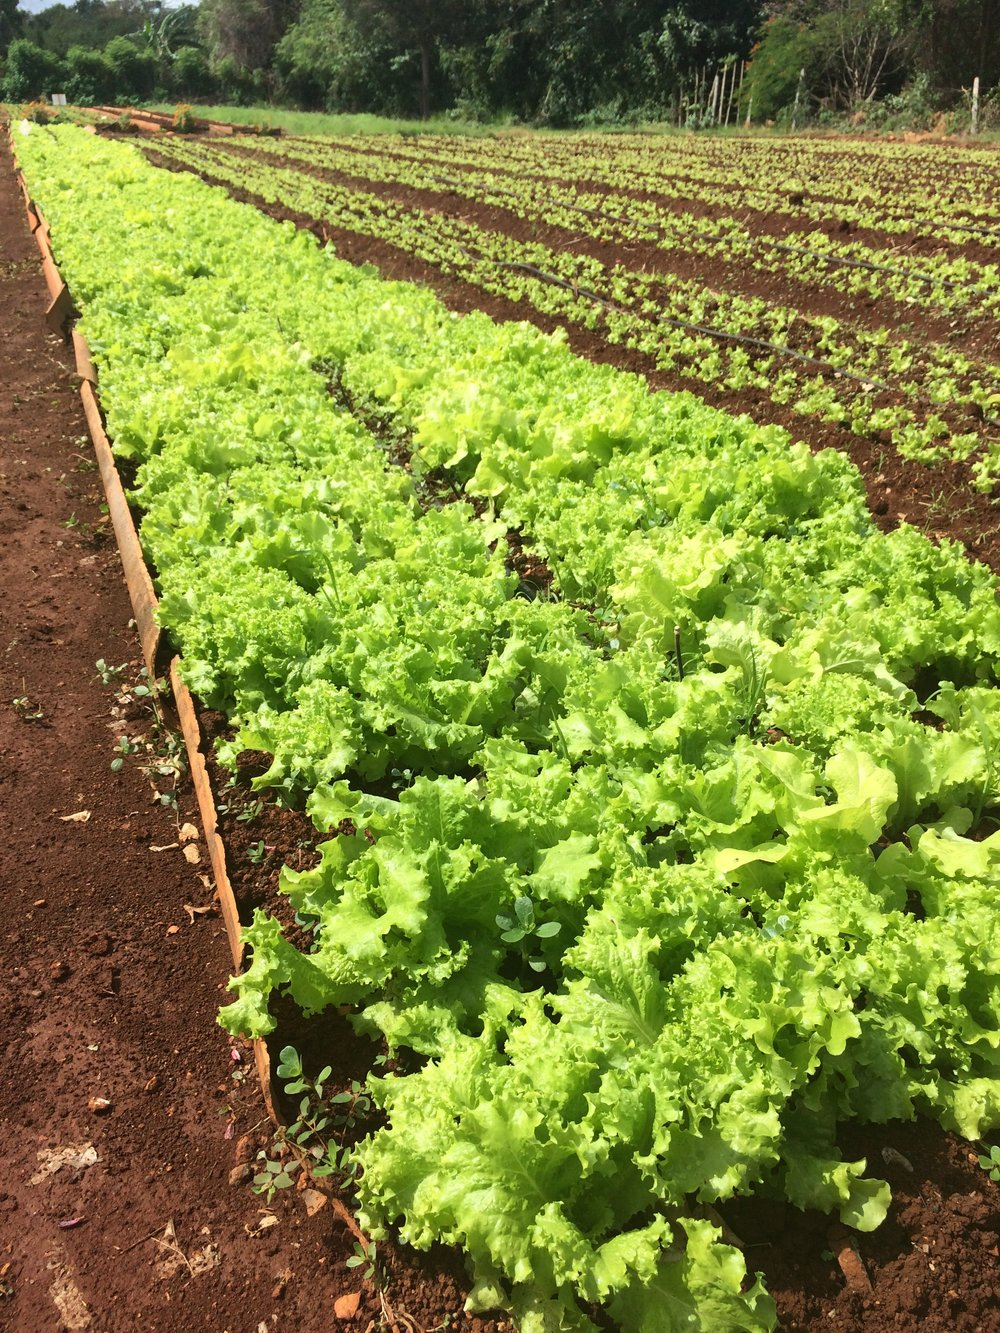 This lettuce -- a luxury in Cuba -- glowed and glimmered in the hot sun of Havana.